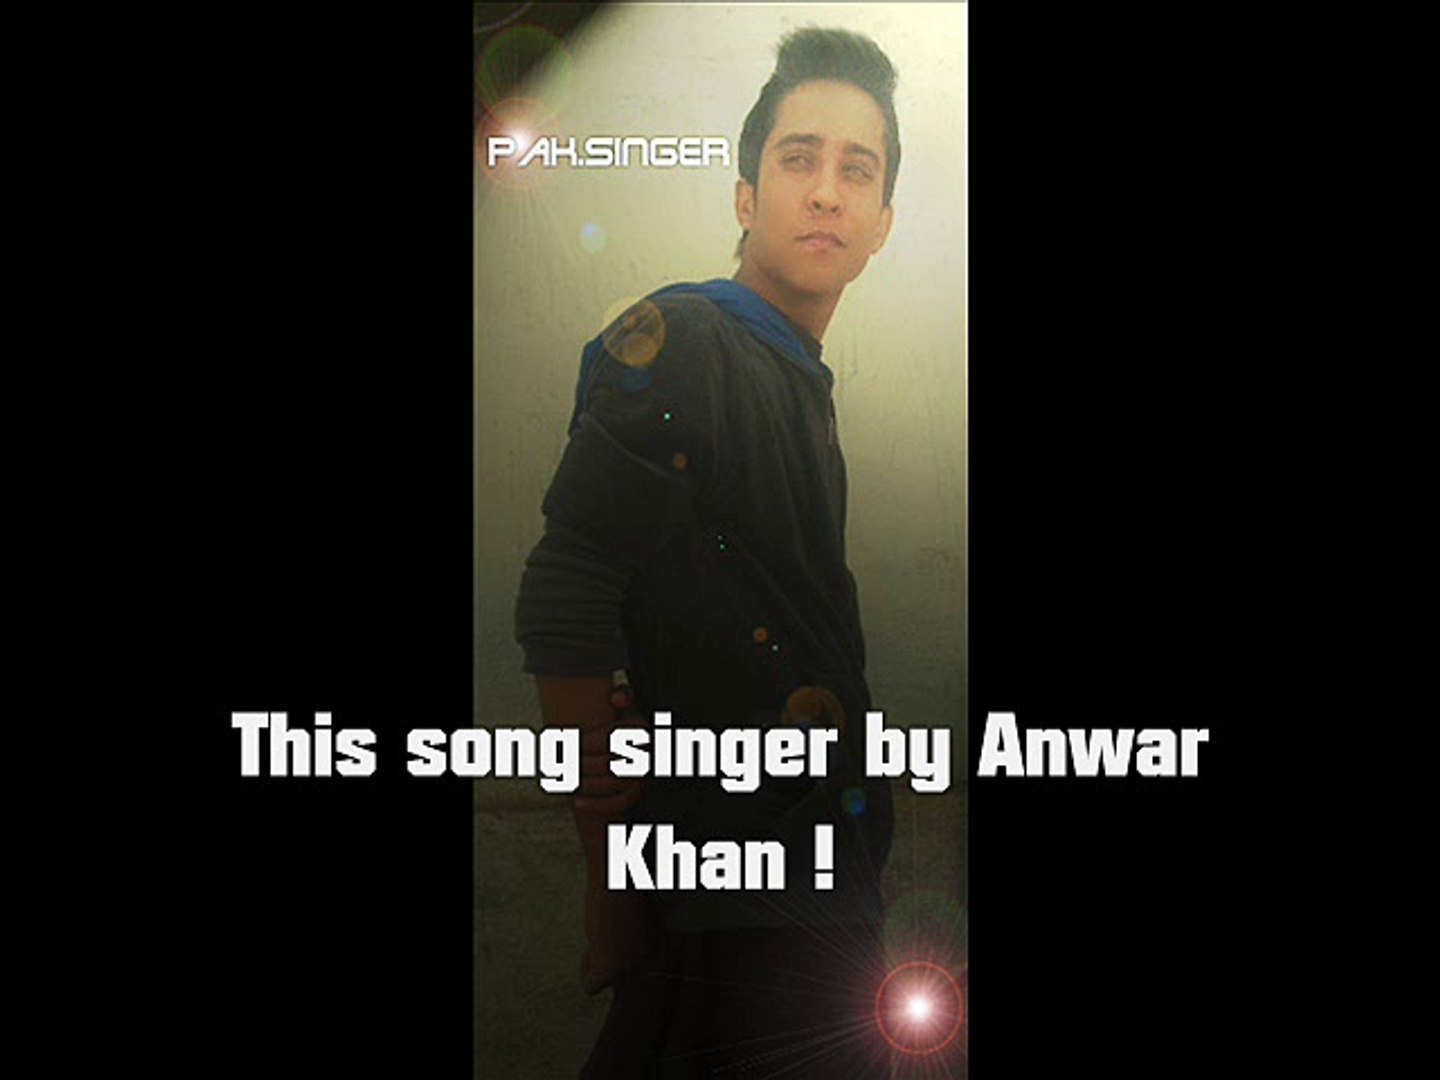 new song 2015 urdu by Anwar Khan India new song 2015 Pakistan new Song 2015 no film  new song by Anw